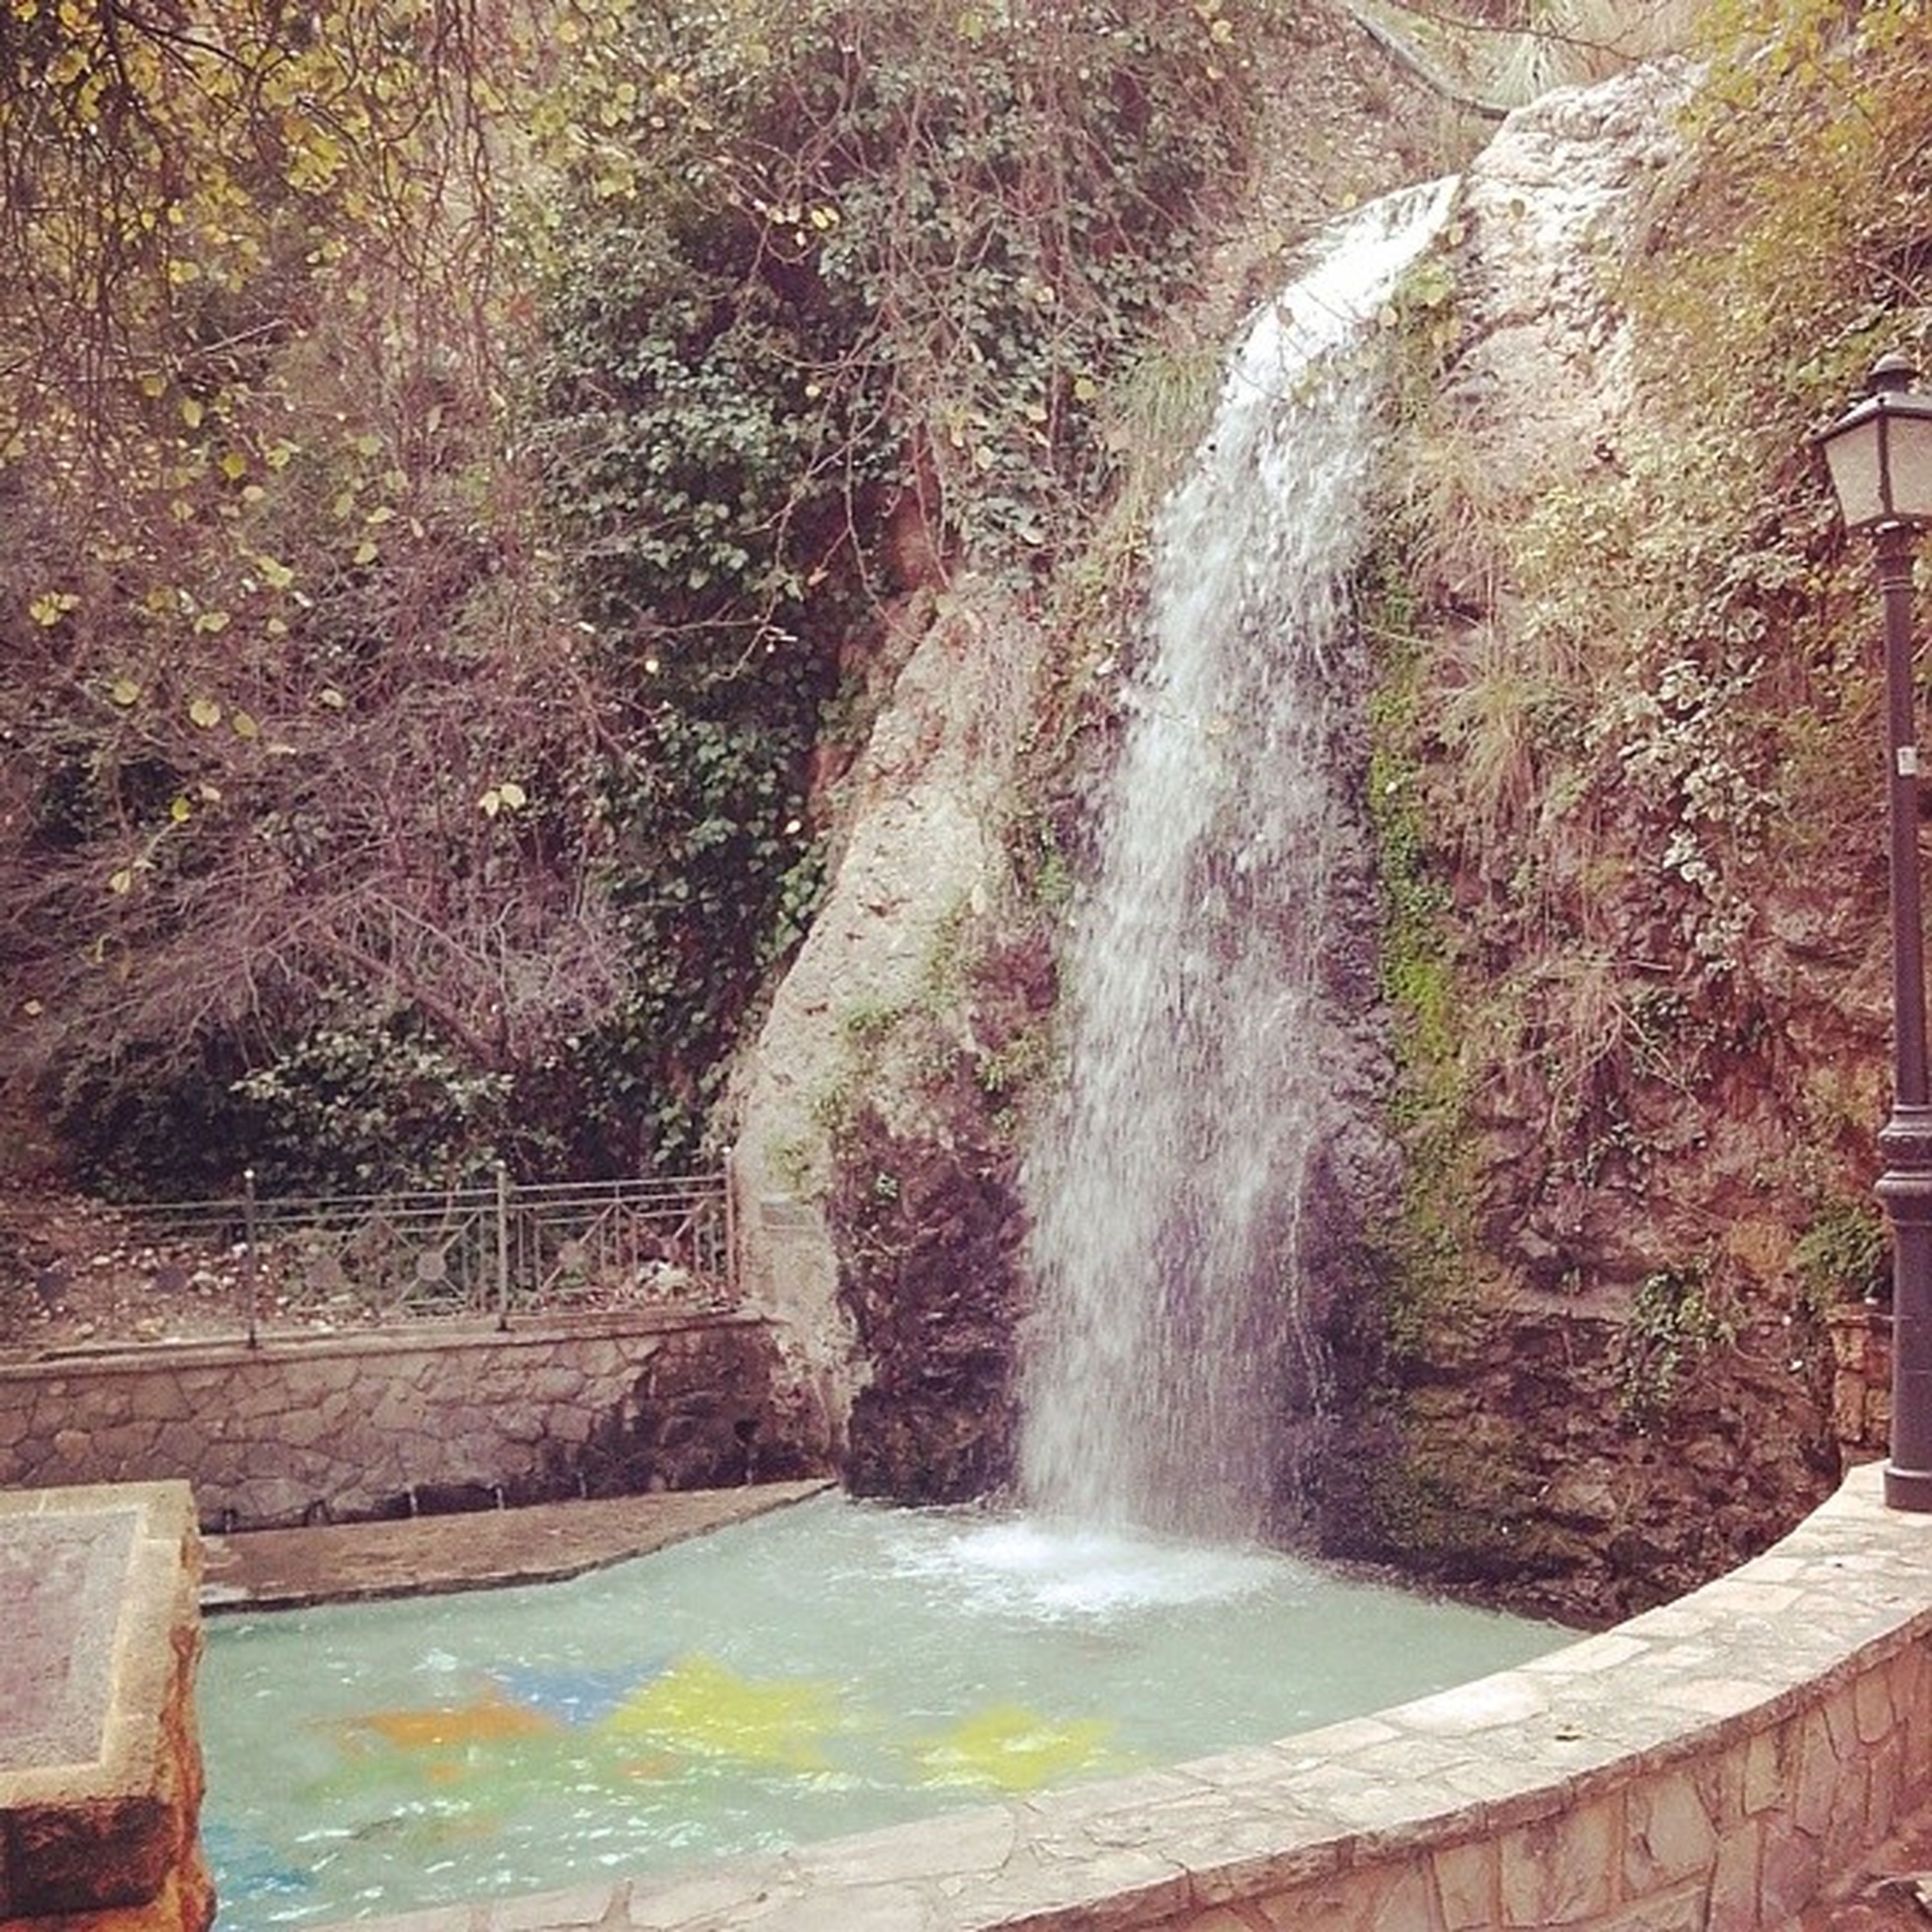 what lucky kids for having this in their playground Forkids  Waterfall Splash Luckykids playground lanucia spain childfriendly